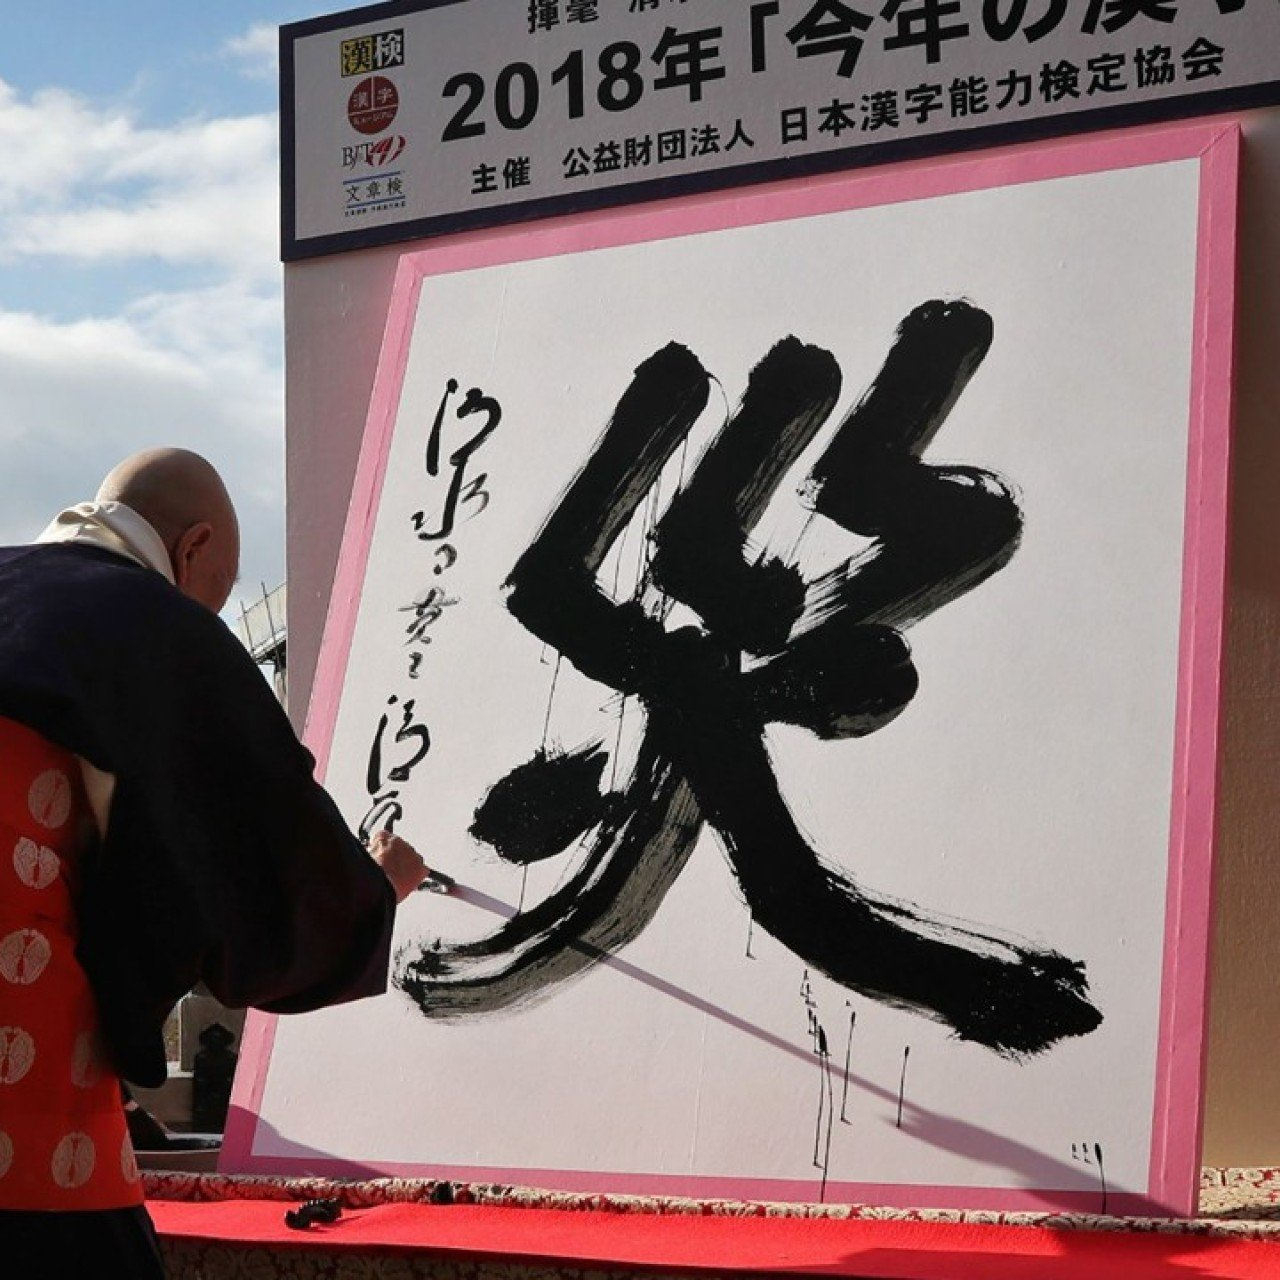 Japan chooses Chinese character for 'disaster' as defining